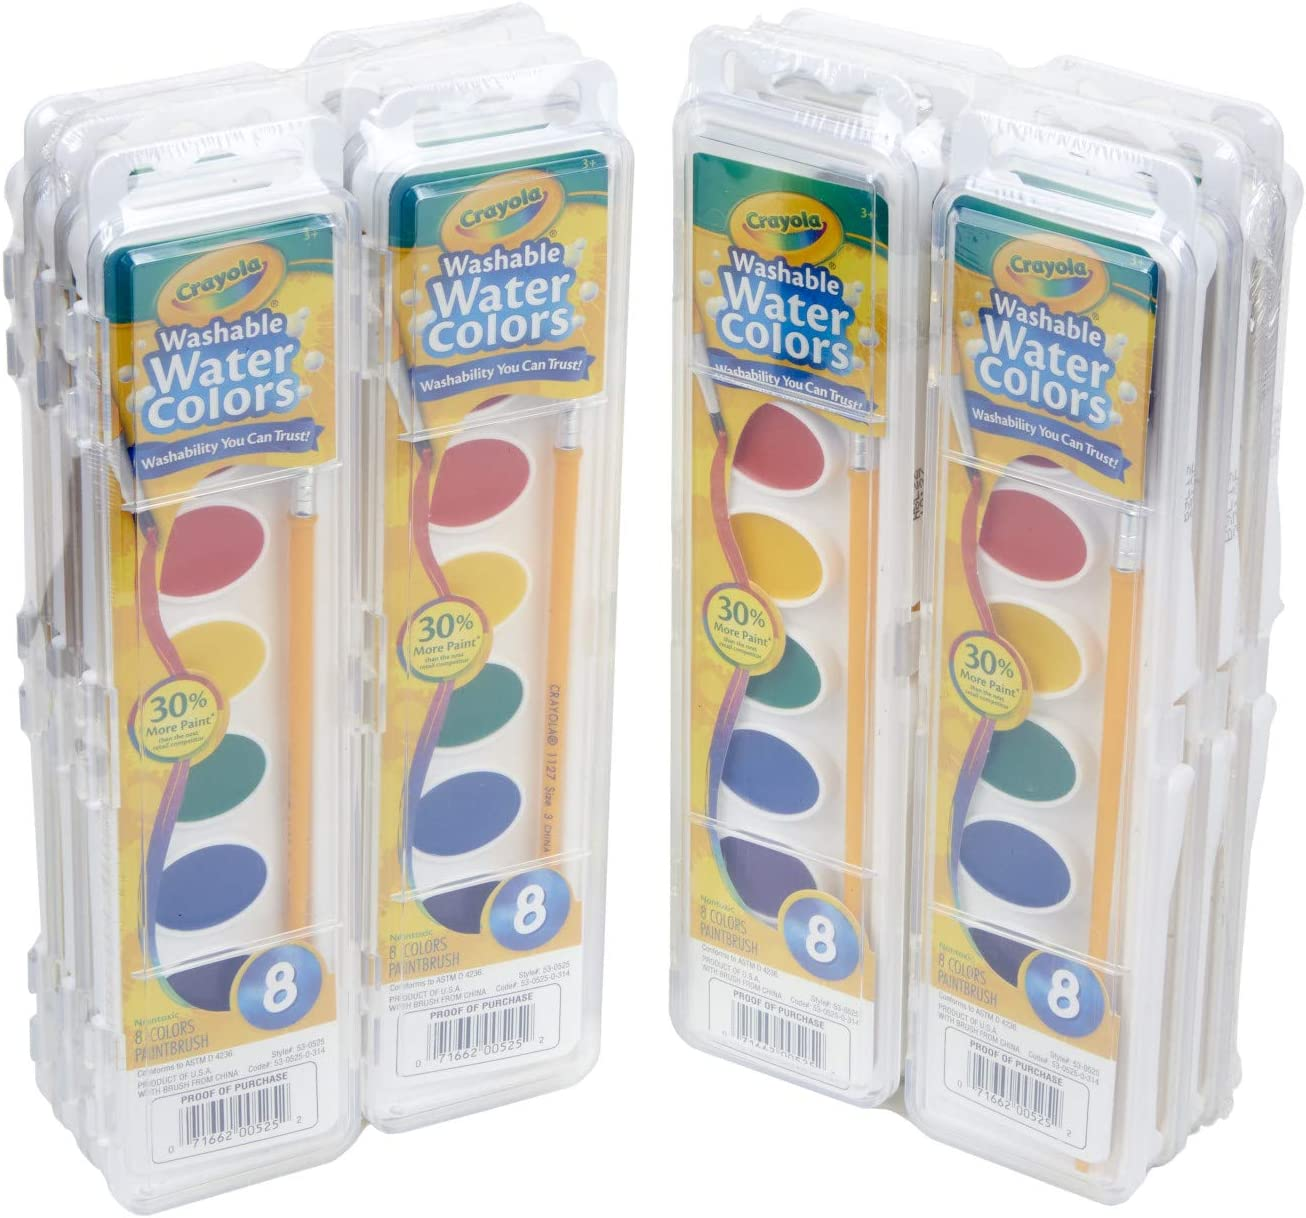 Crayola Washable Watercolors in 8 Vibrant Colors Classroom Supplies 12 Paint Sets for Kids